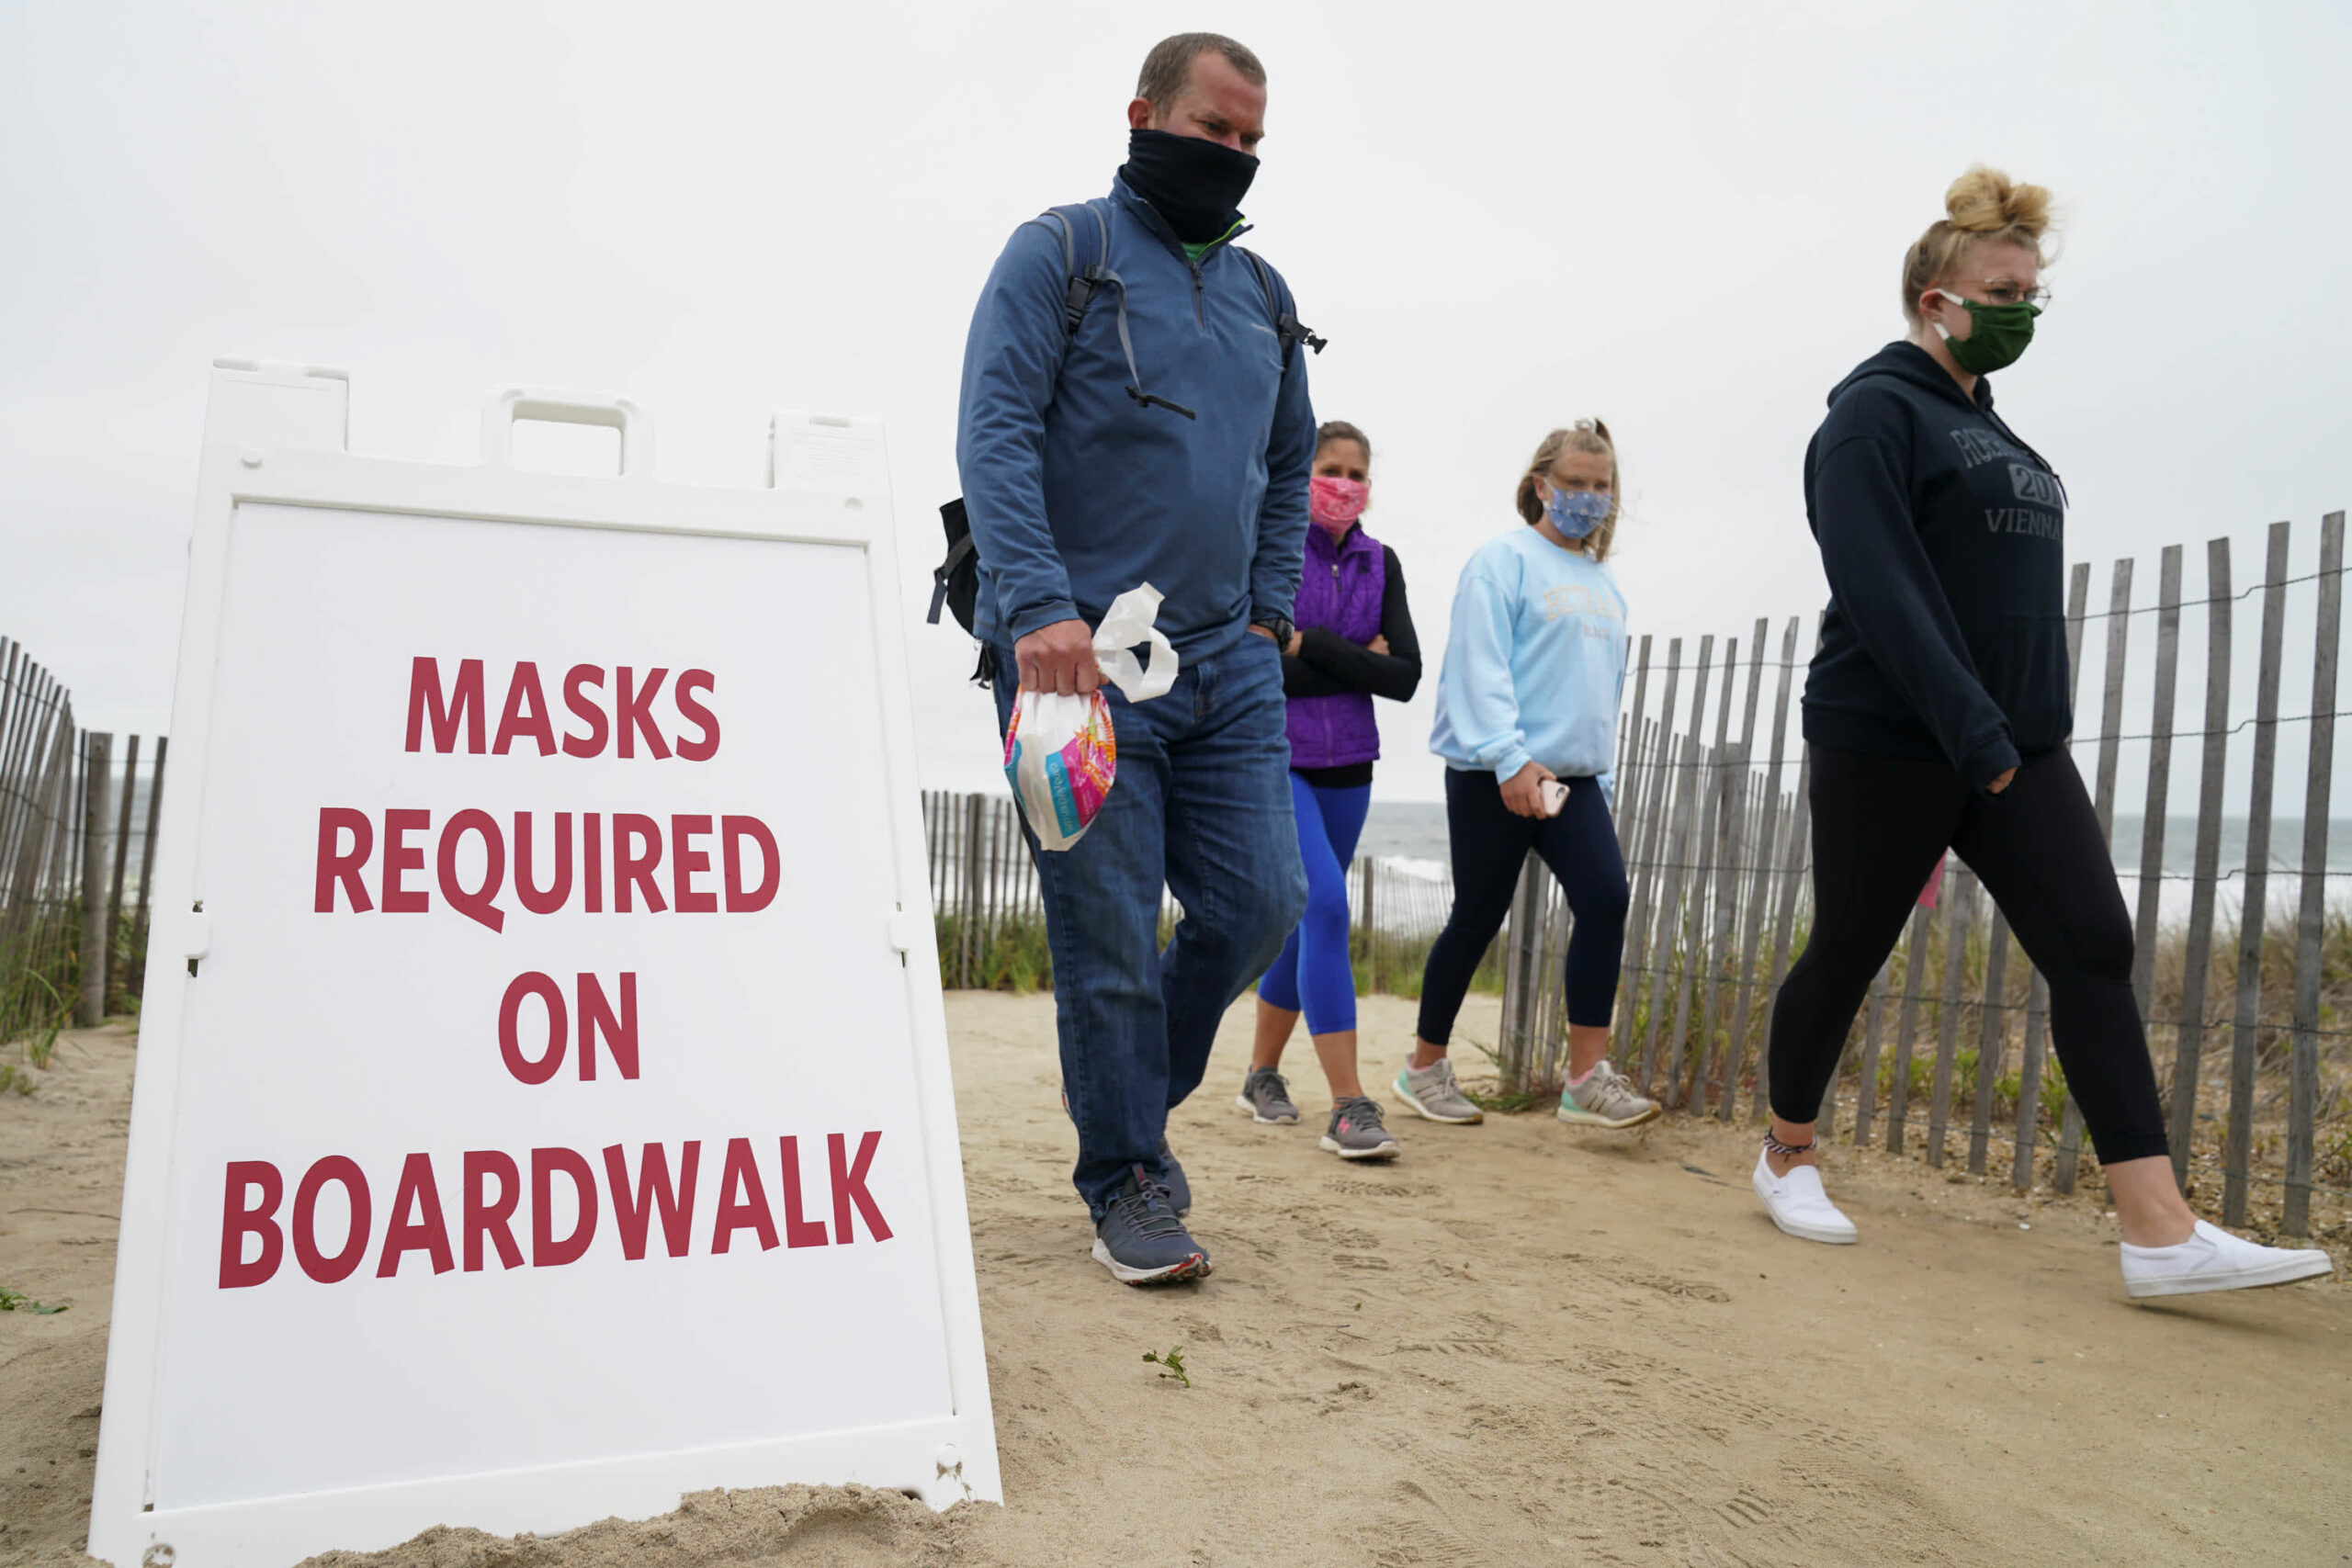 Dr. Scott Gottlieb says 'no one goes to be sporting' Covid masks by June